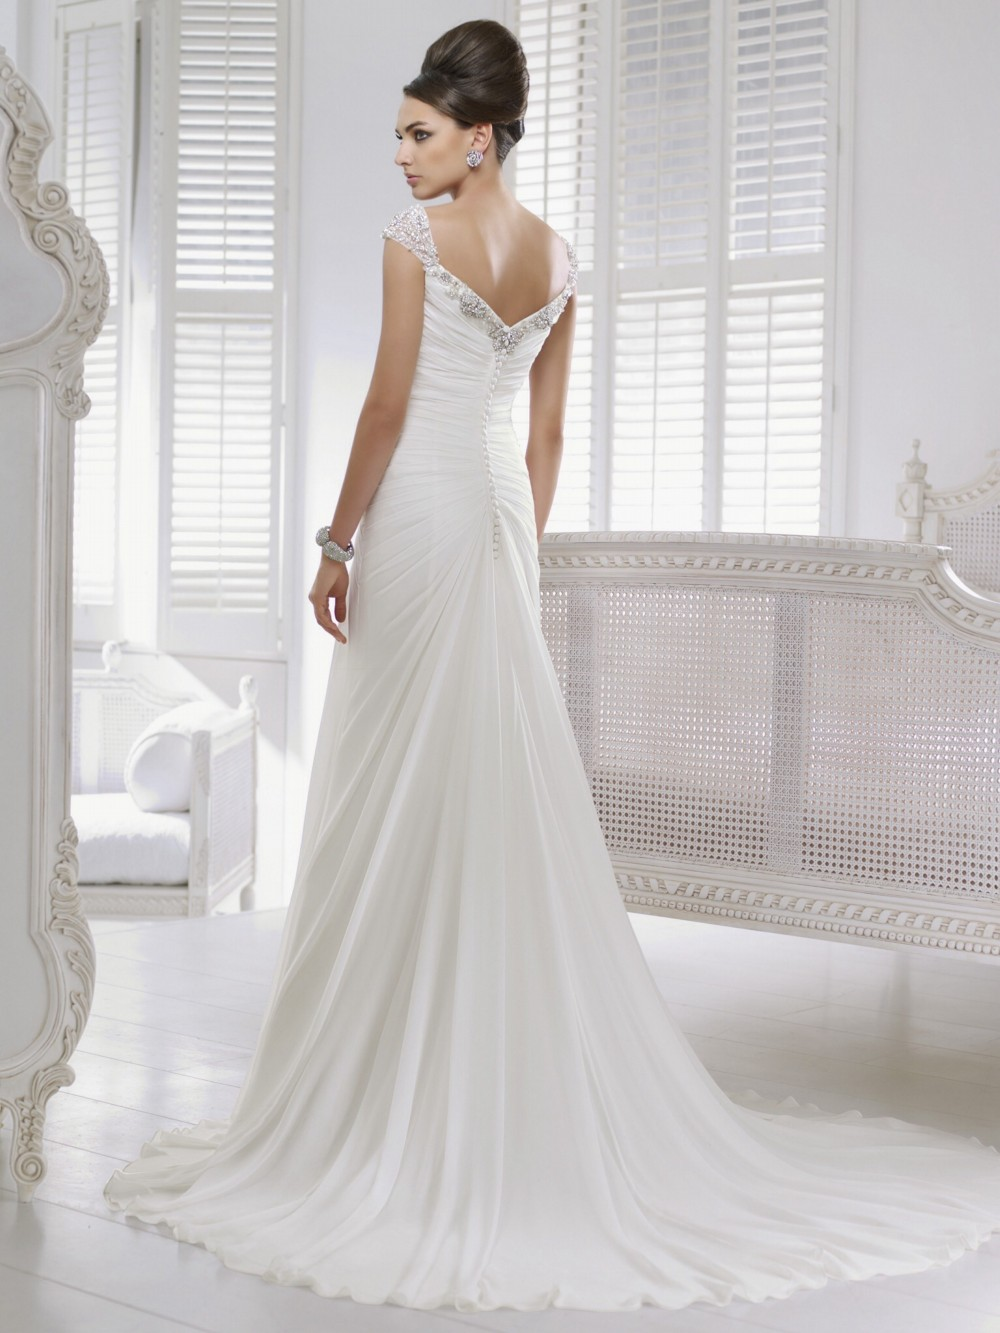 Victoria Jane Imelda Second Hand Wedding Dress on Sale 52% Off